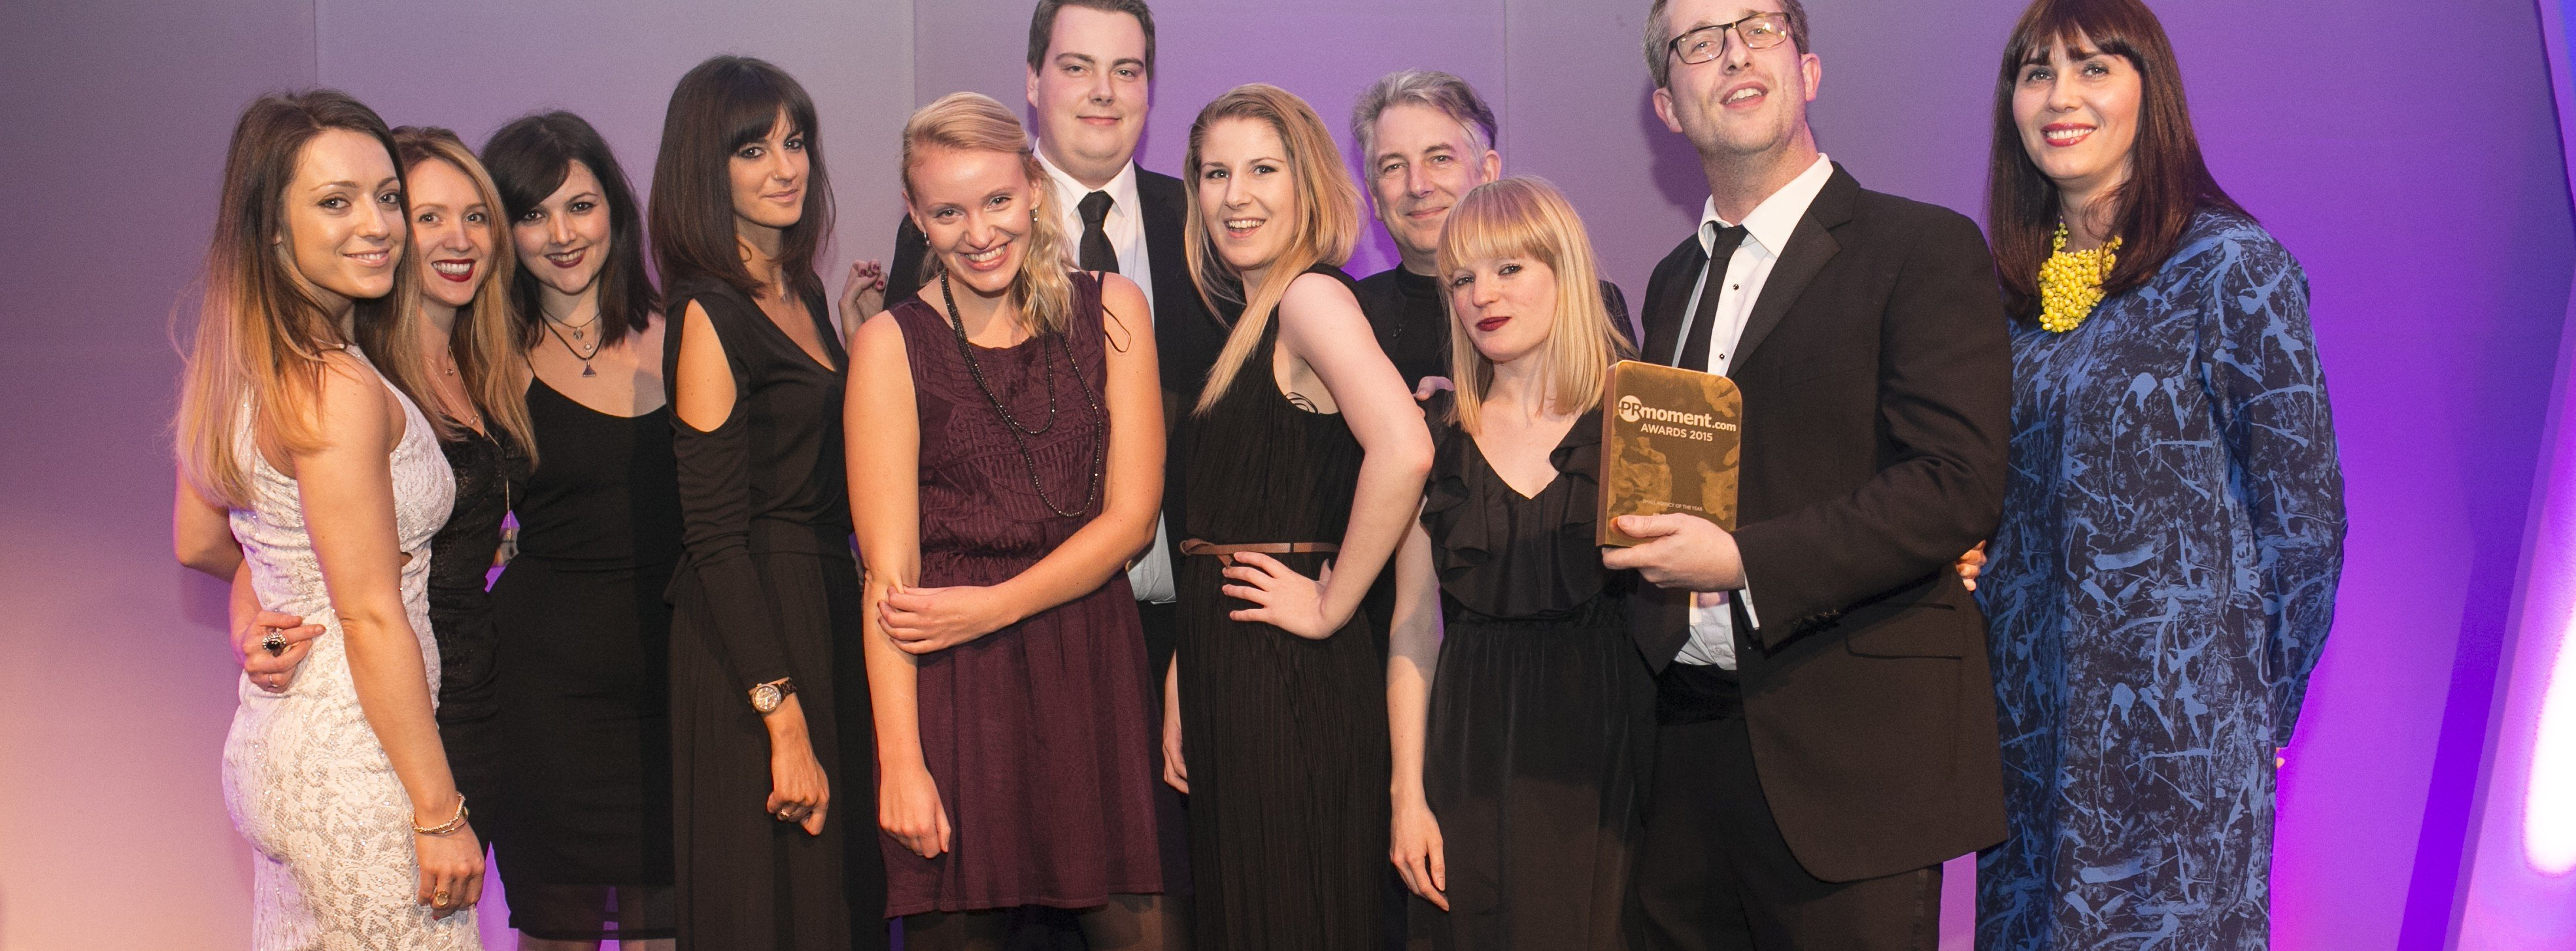 PR Agency One winning the Small Agency of the Year Award